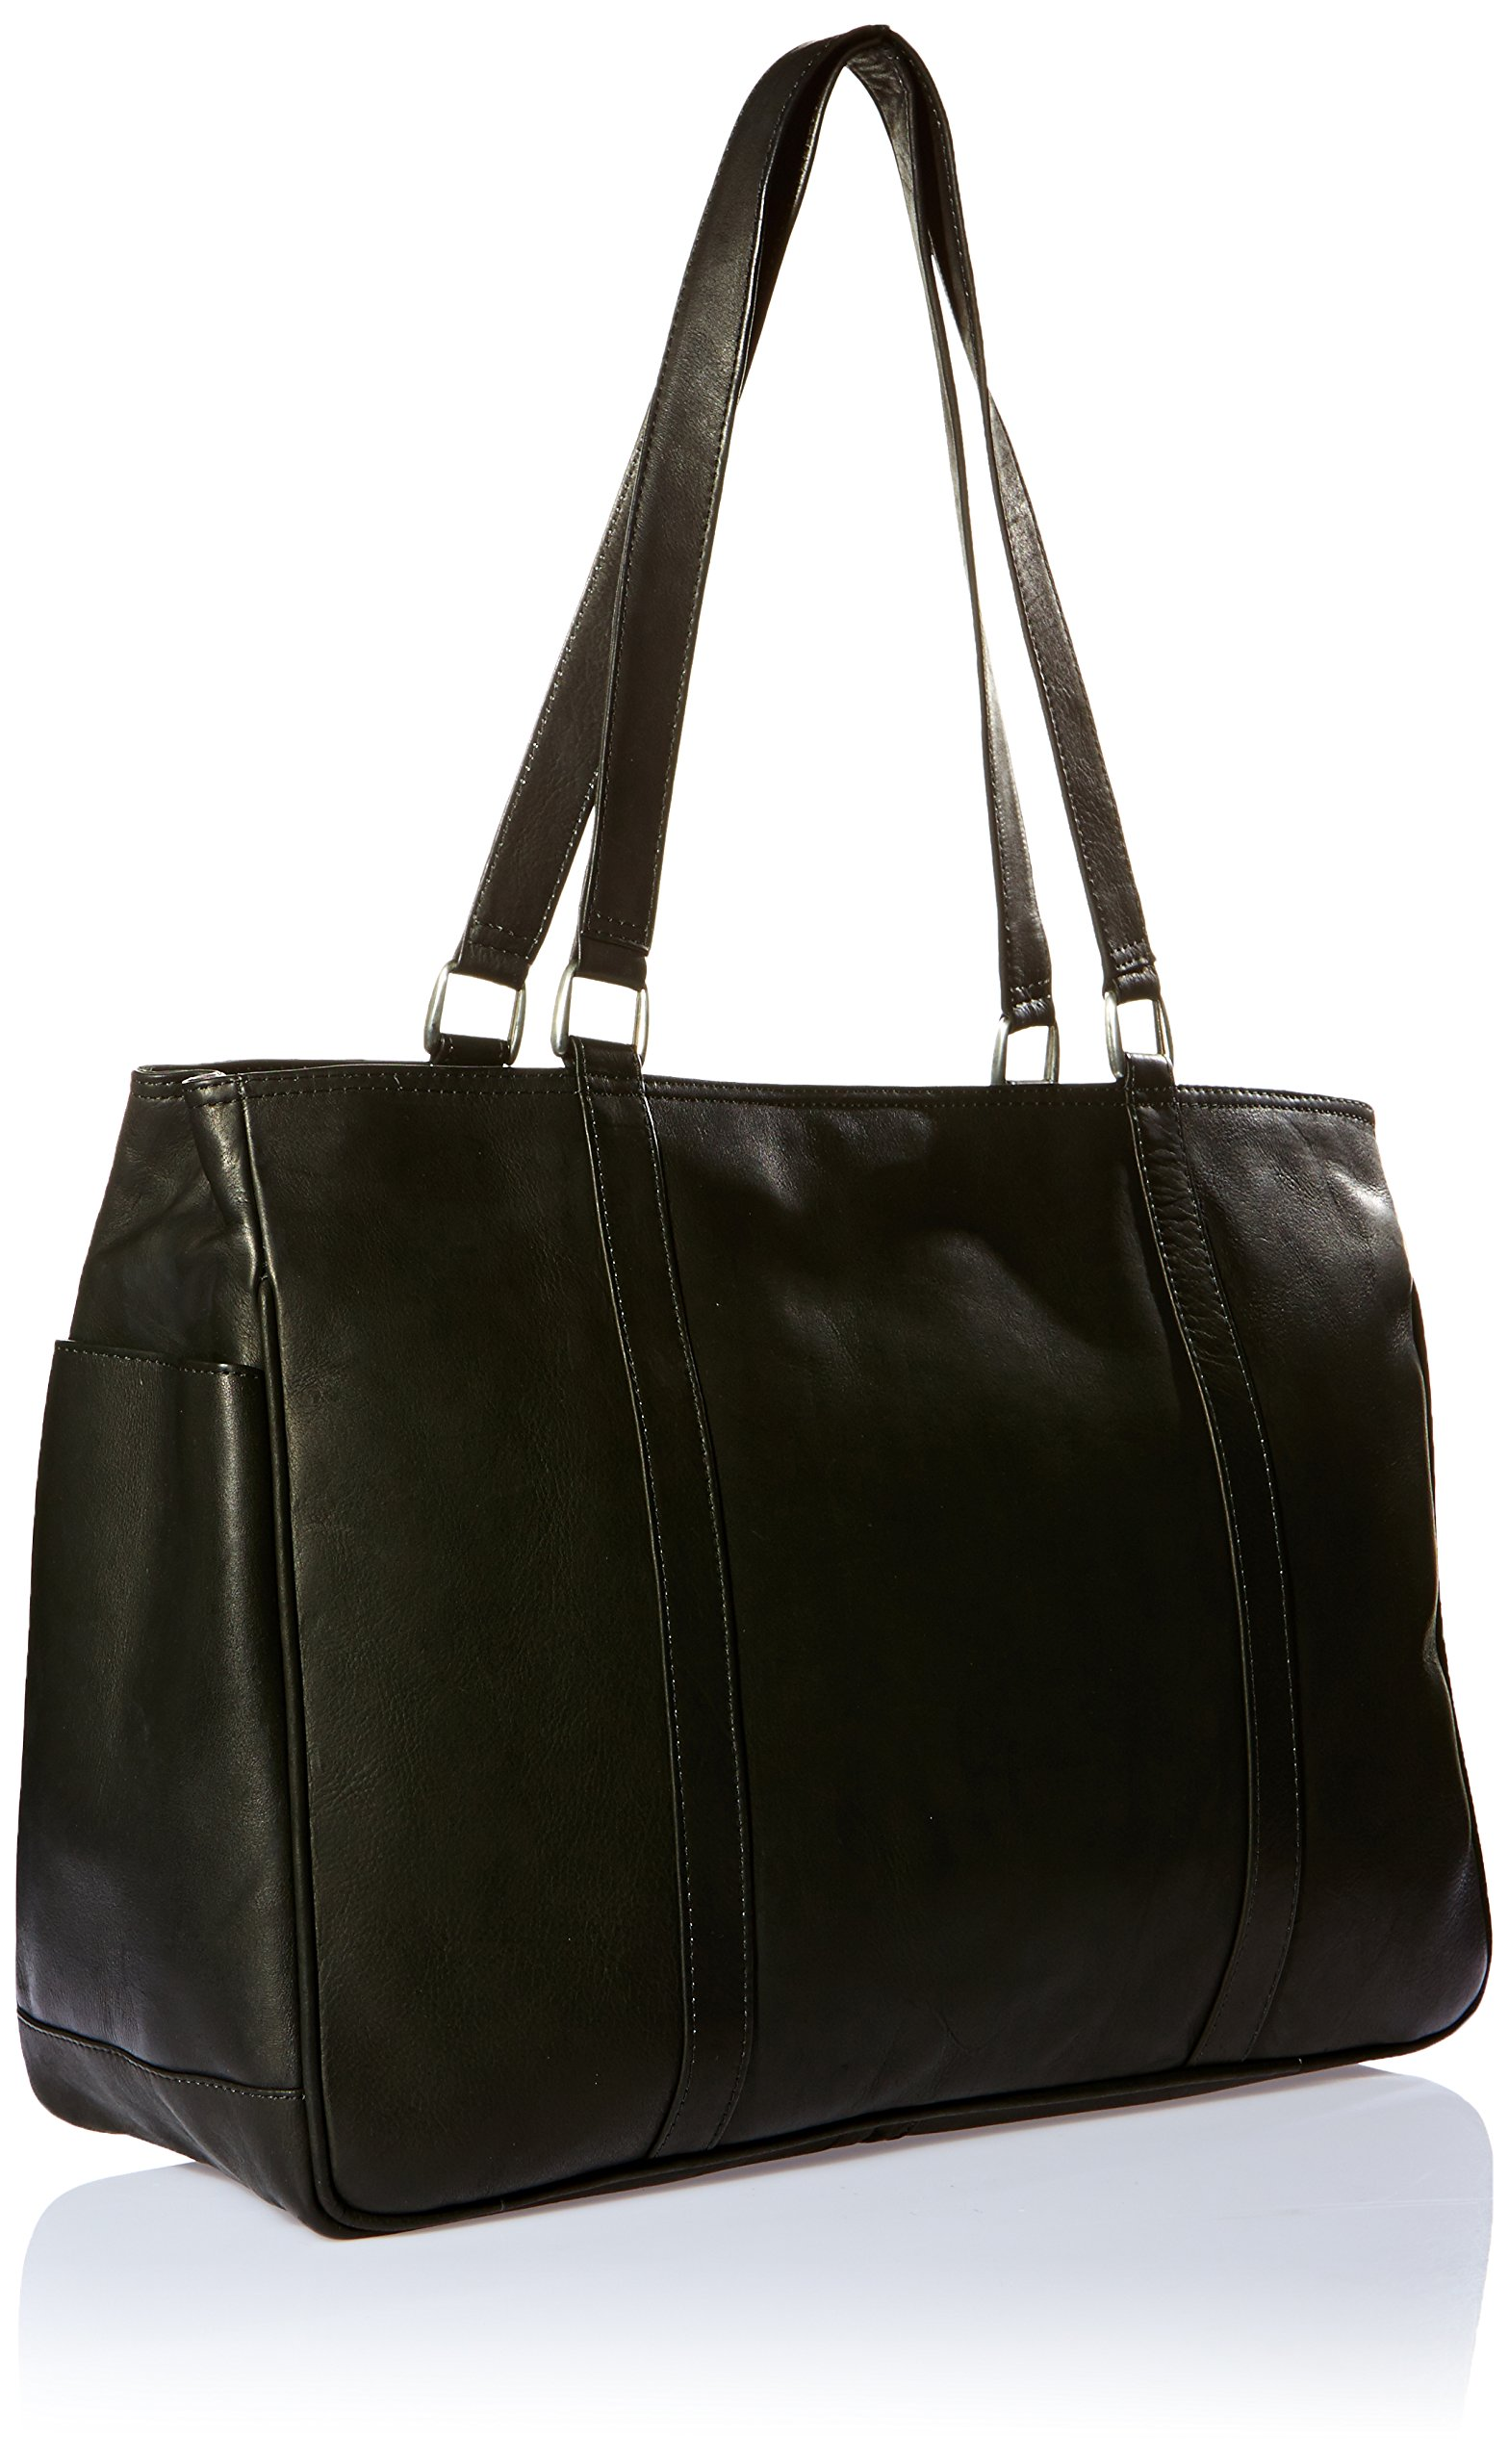 Piel Leather Large Shopping Bag, Black, One Size by Piel Leather (Image #2)